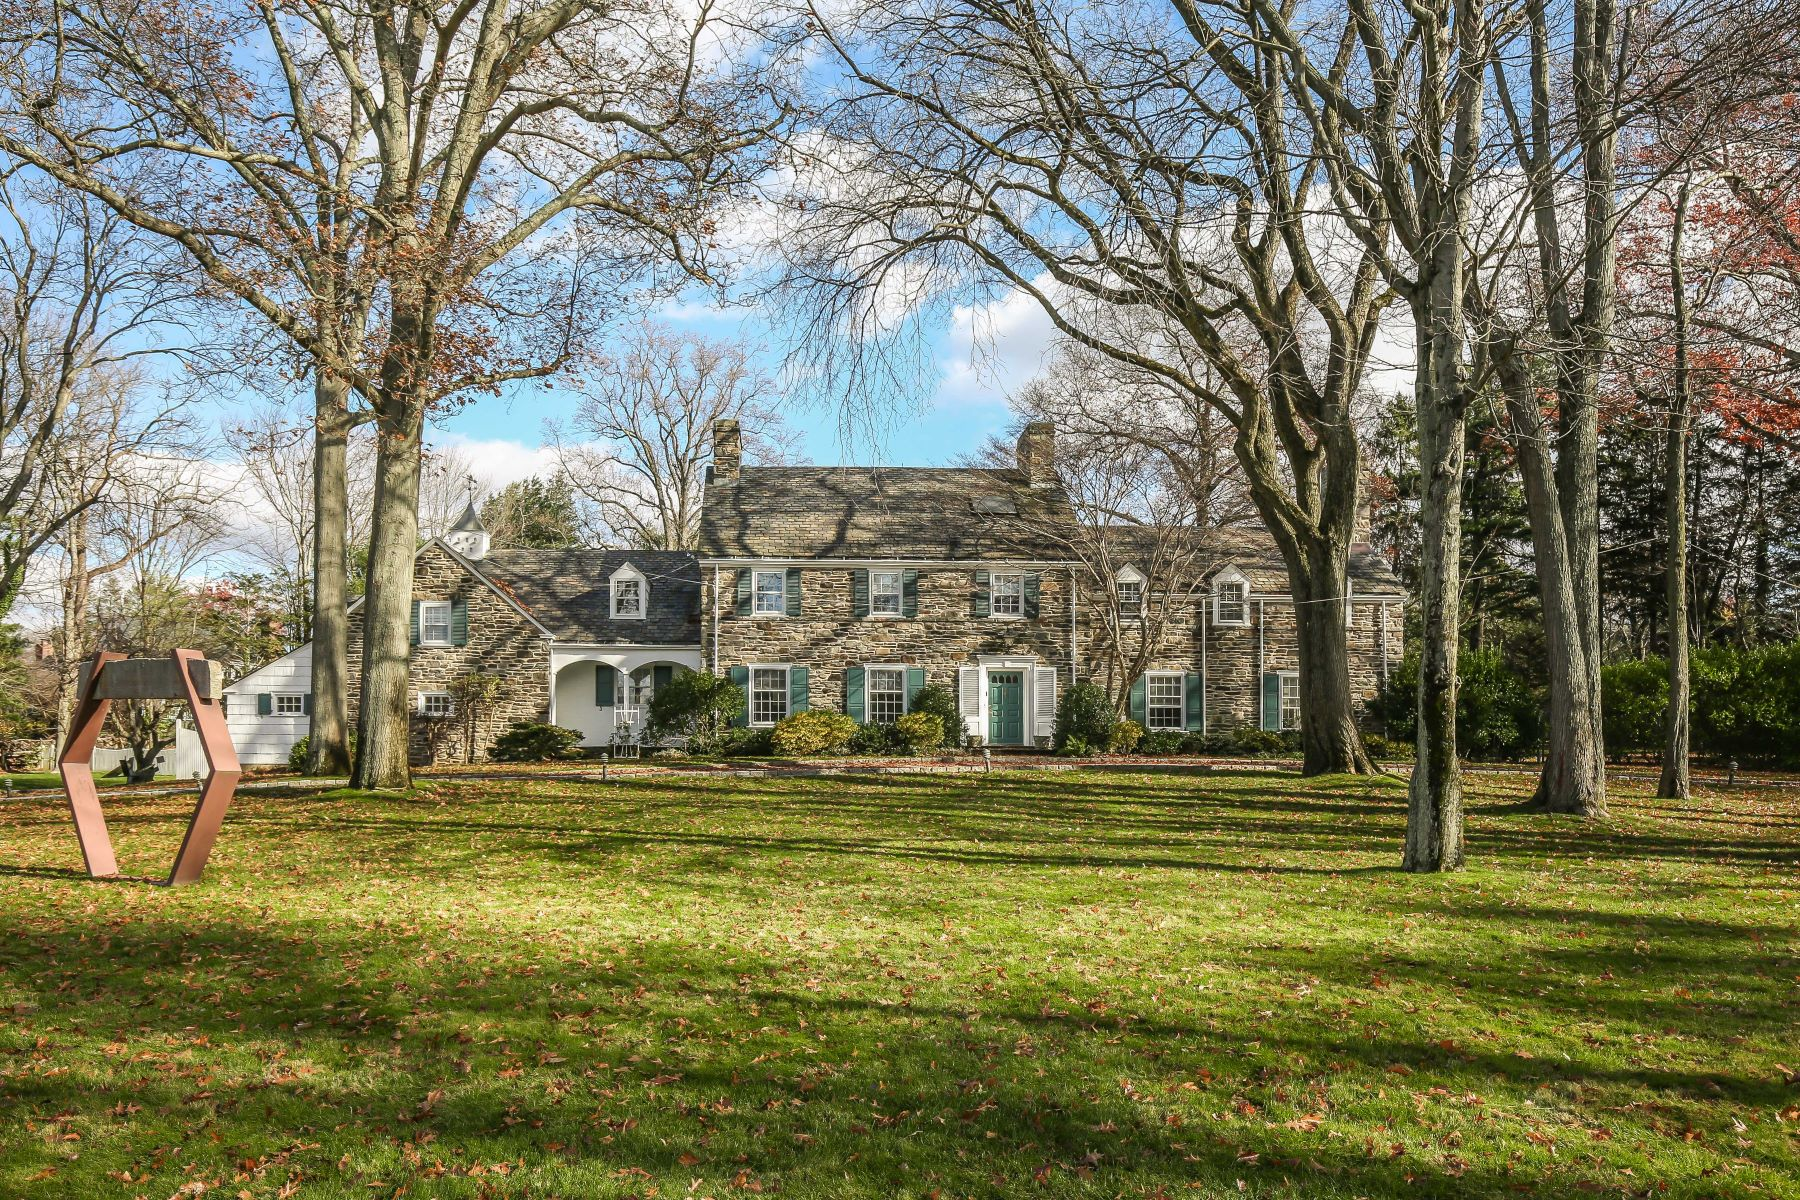 Single Family Home for Sale at Scarsdale's Most Admired and Iconic Homes 5 Quaker Center Scarsdale, New York 10583 United States